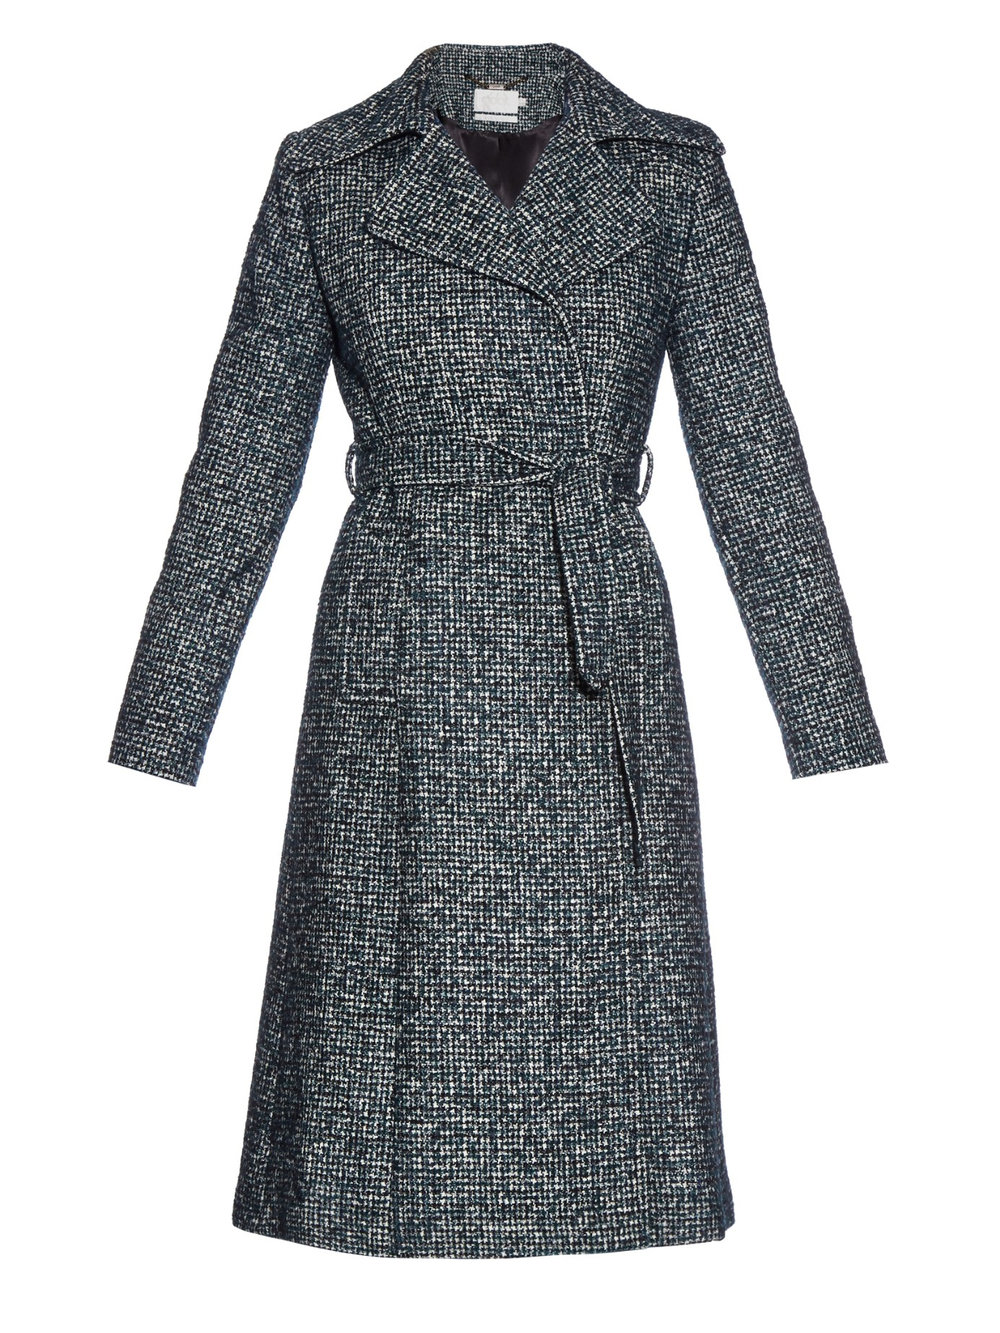 goat-green-multi-astoria-wool-blend-tweed-coat-green-product-2-565052853-normal.jpeg